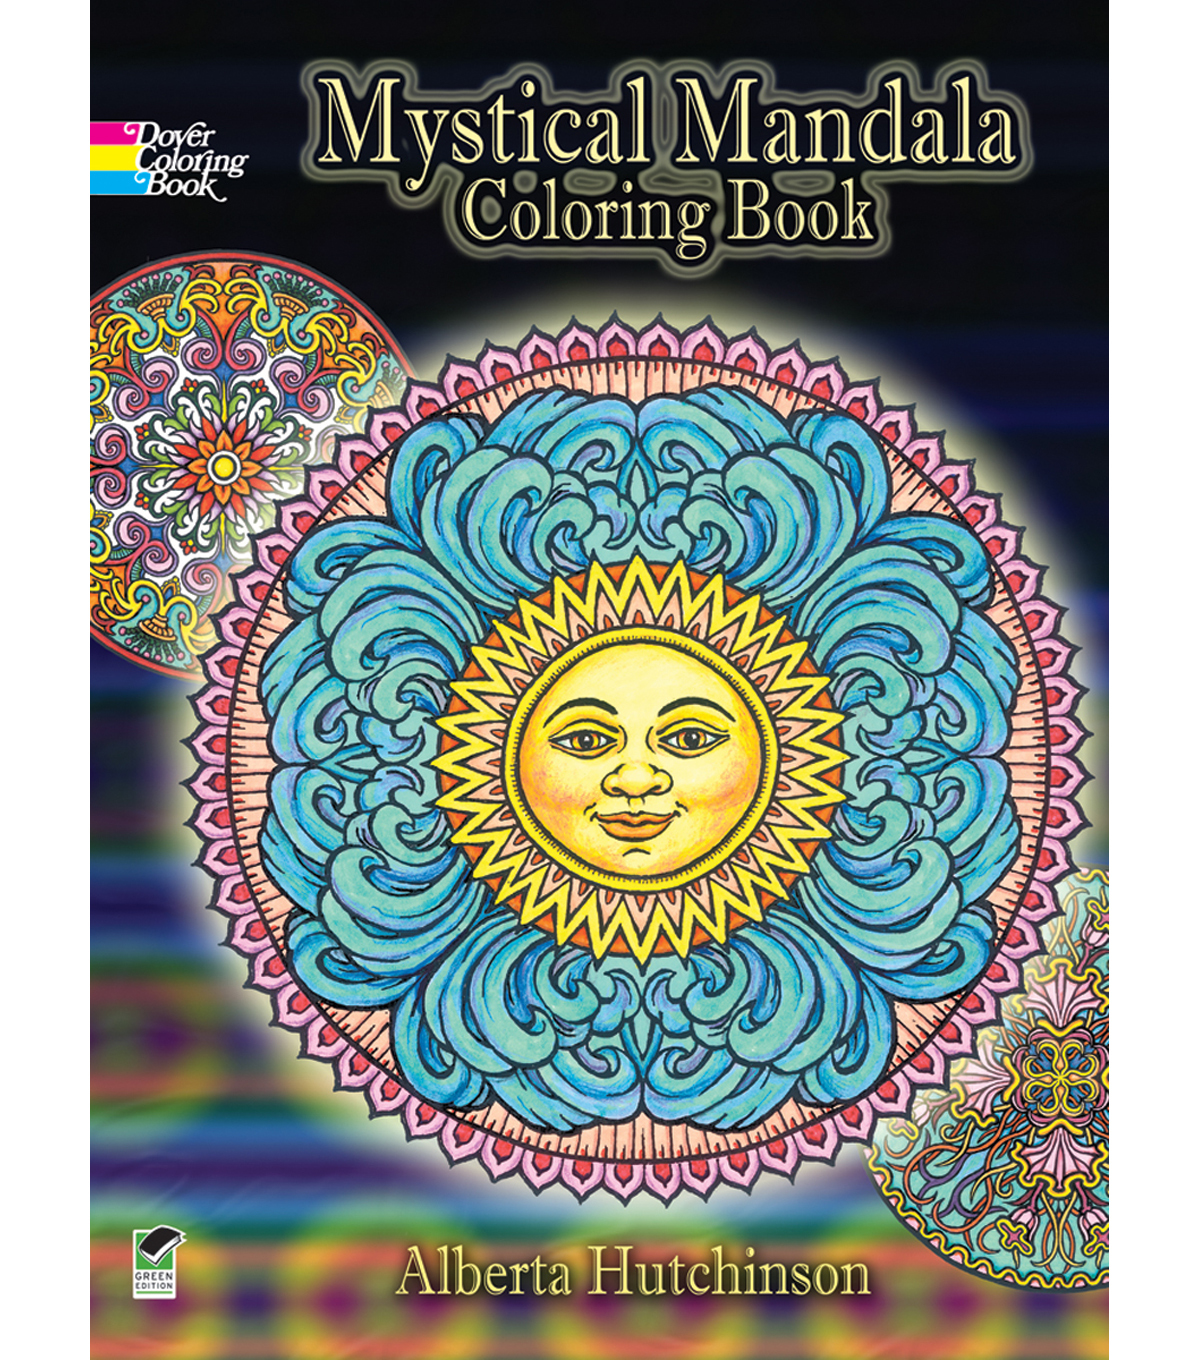 Mystical Mandala Coloring Book JOANN